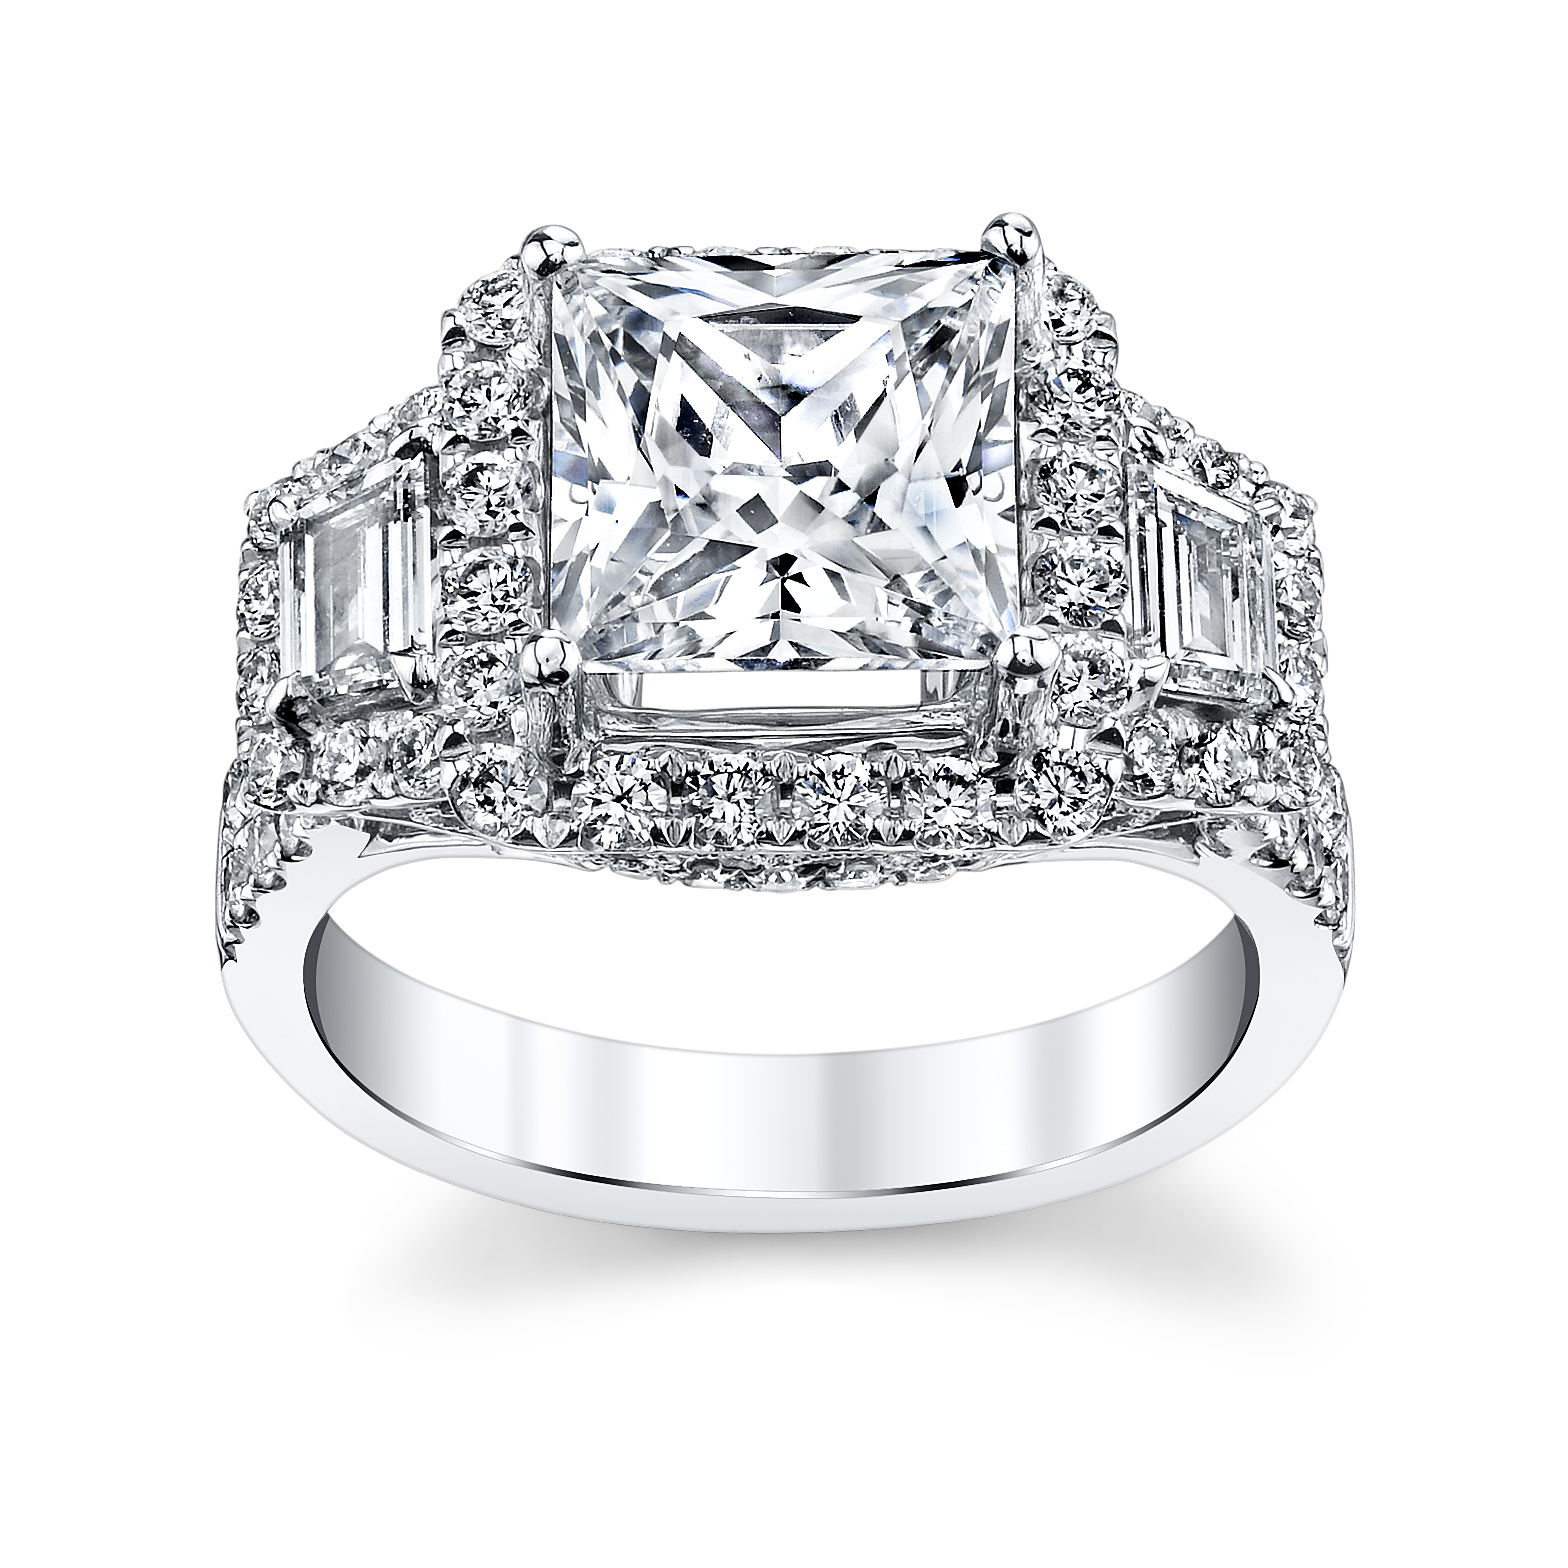 Robbins Brothers Engagement Rings: Robbins Brothers' 12 Rings Of Christmas 2013